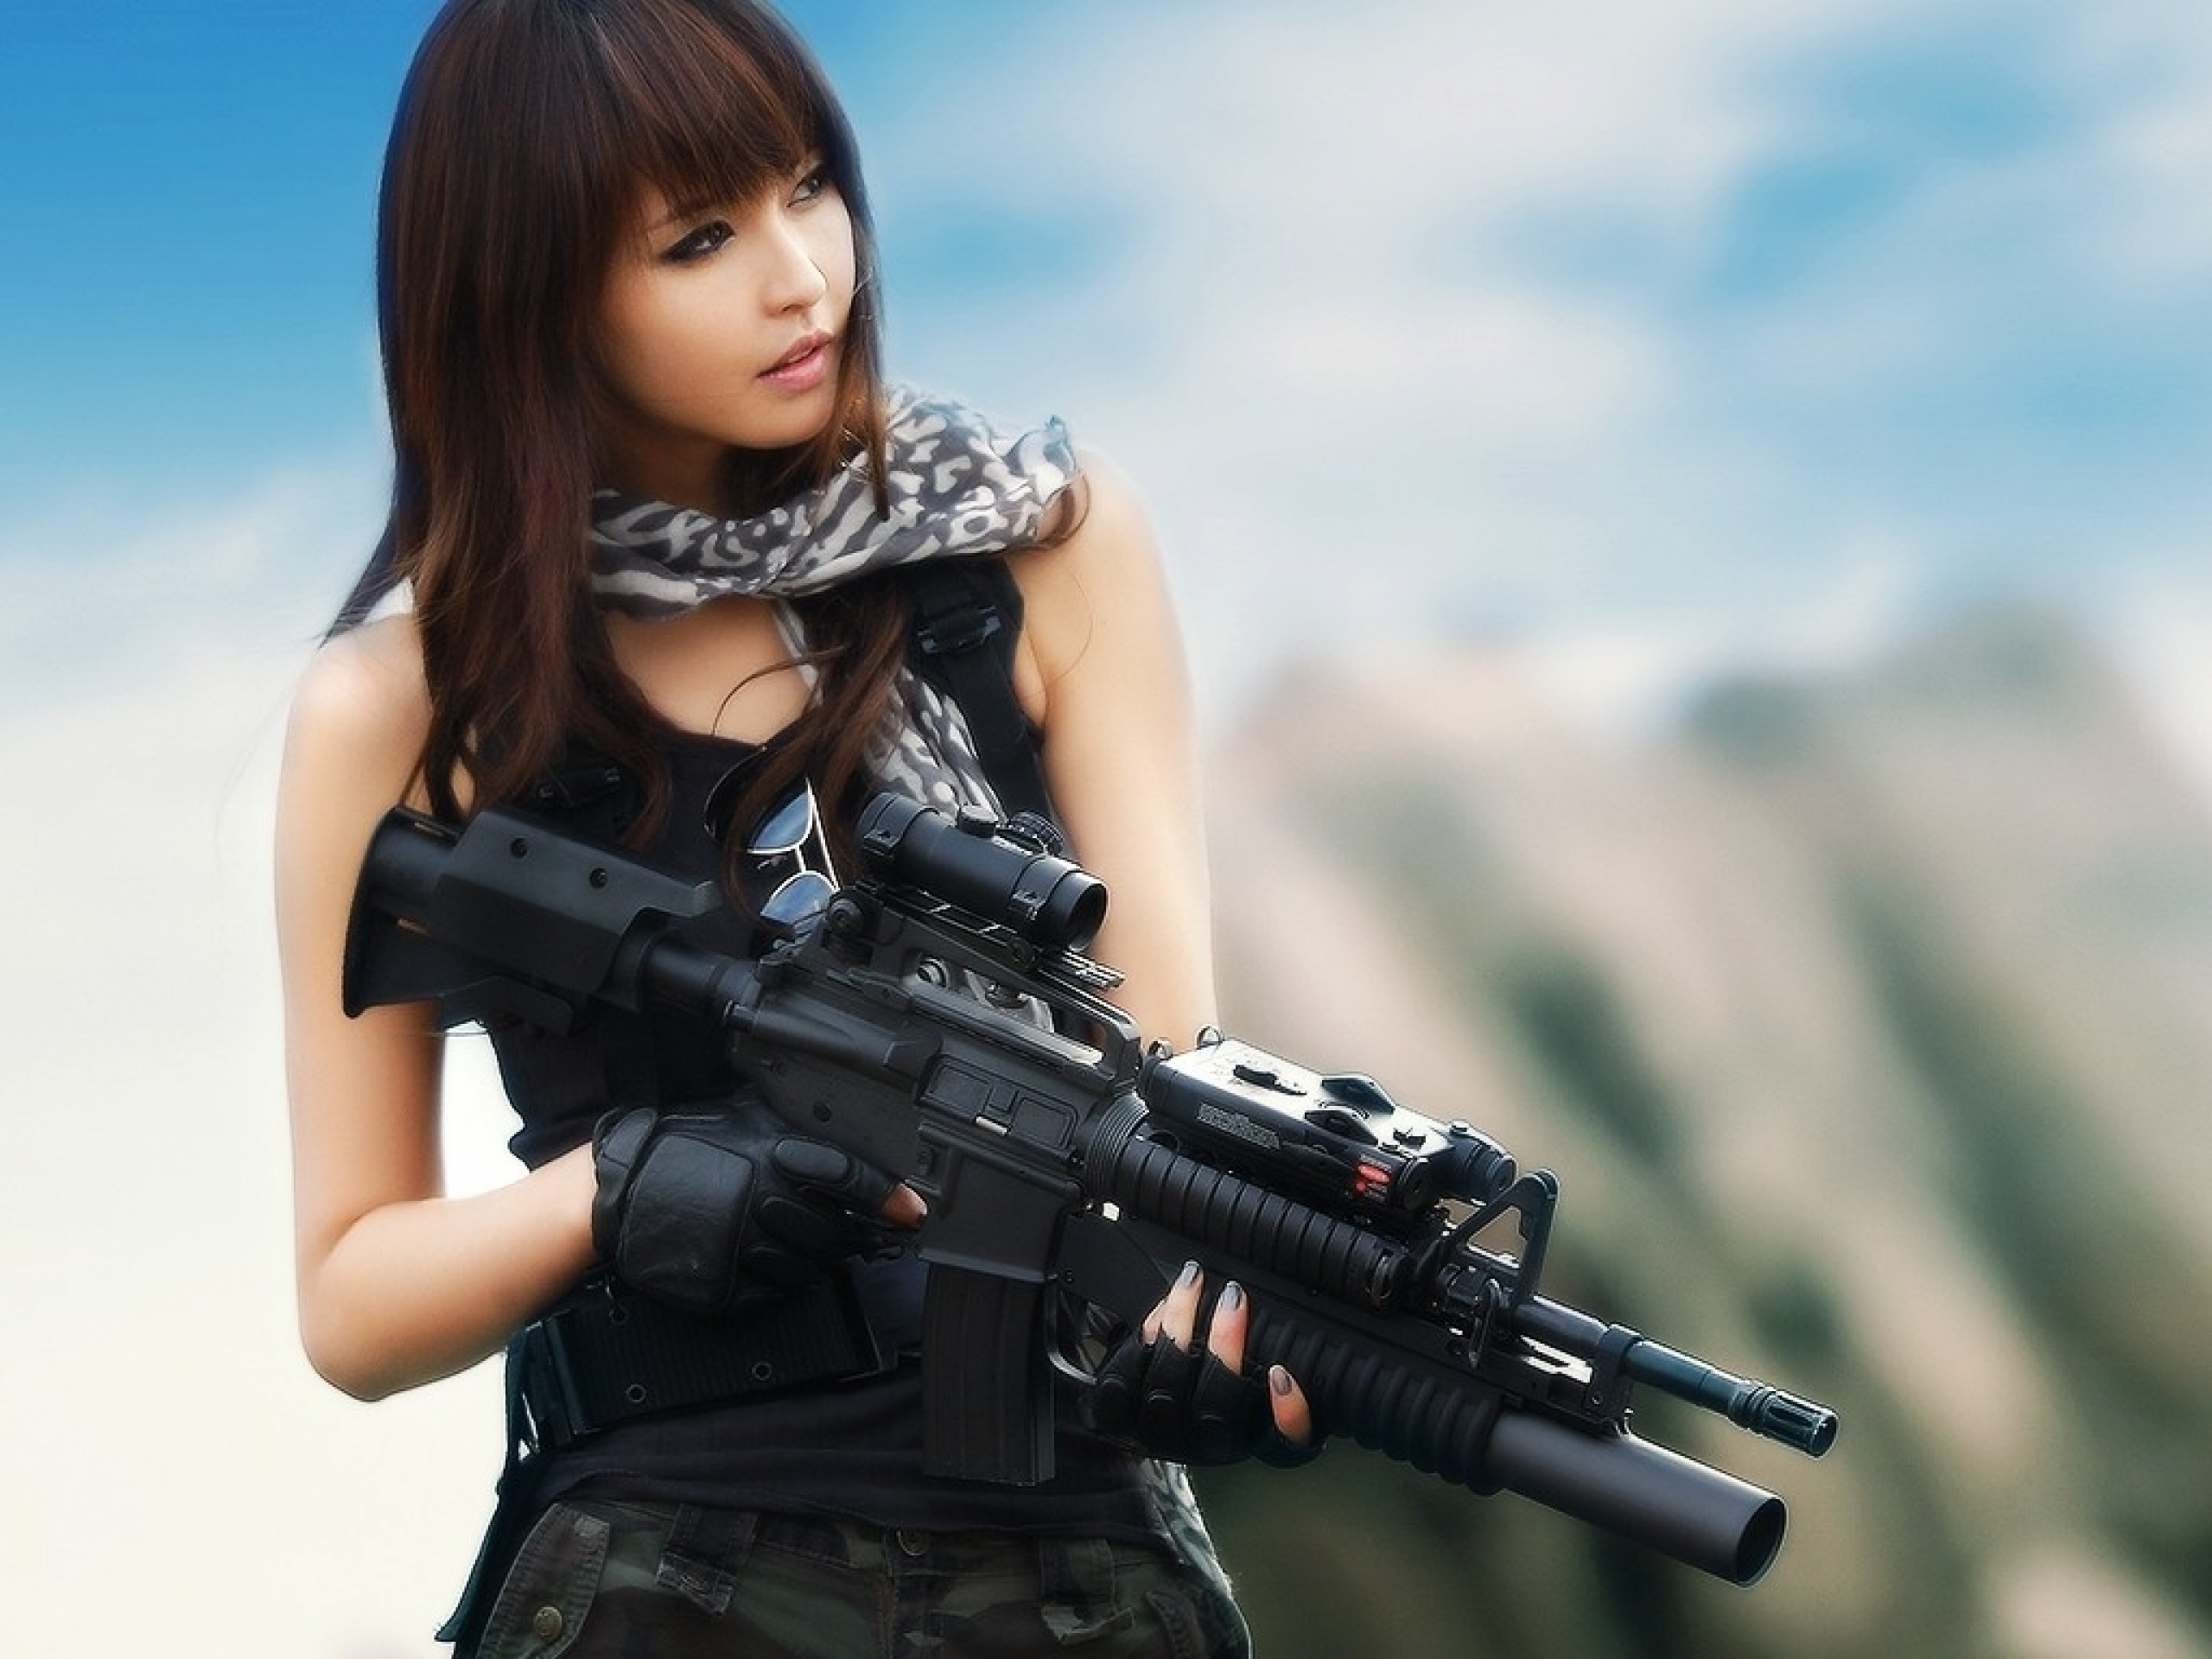 Asian Babes With Guns These Girls Come Fully Loaded